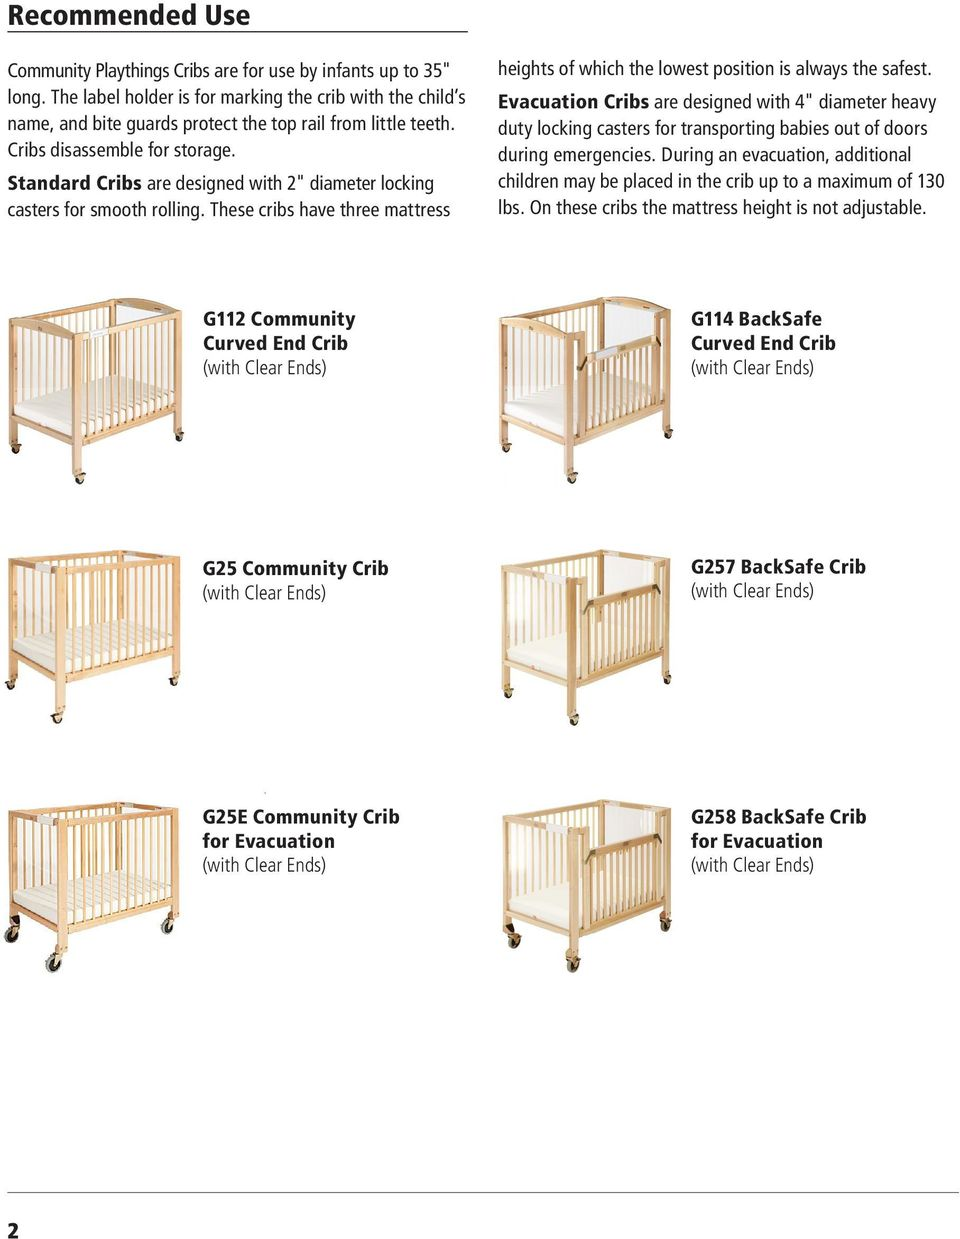 "Standard Cribs are designed with 2"" diameter locking casters for smooth rolling. These cribs have three mattress heights of which the lowest position is always the safest."